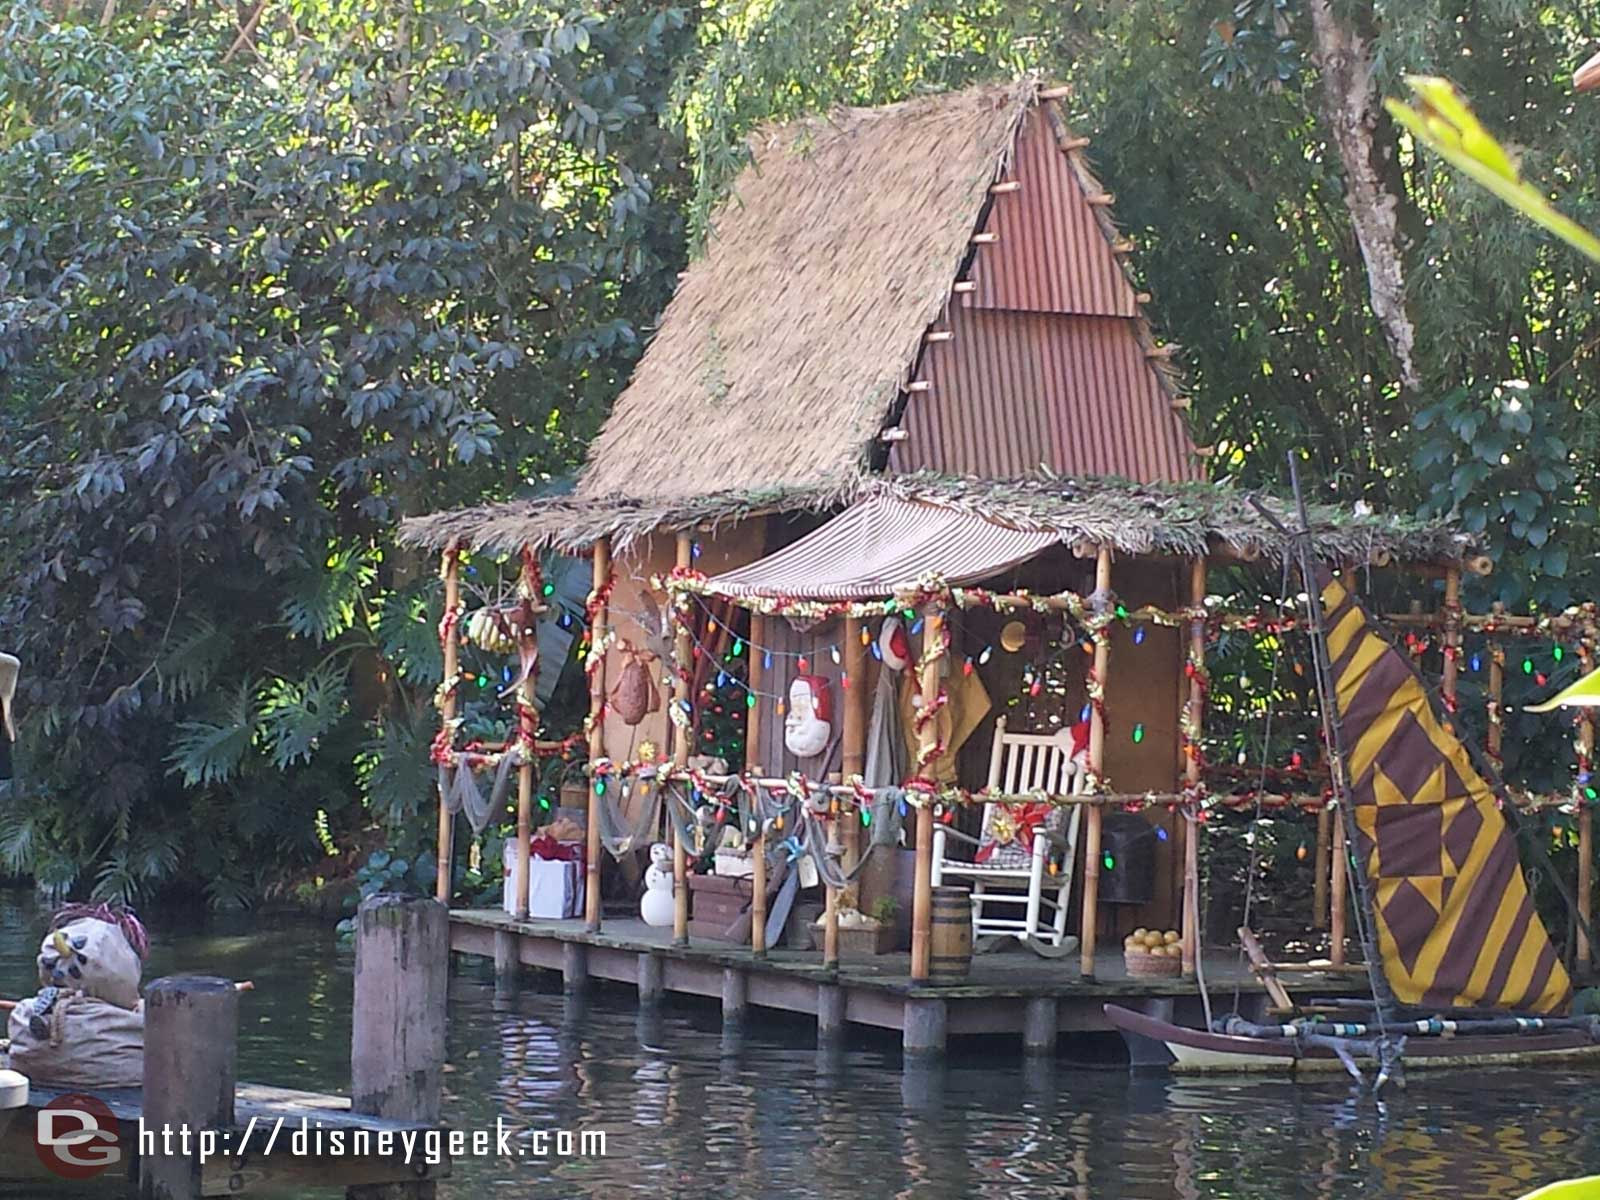 Jingle Cruise – a hut across from the dock